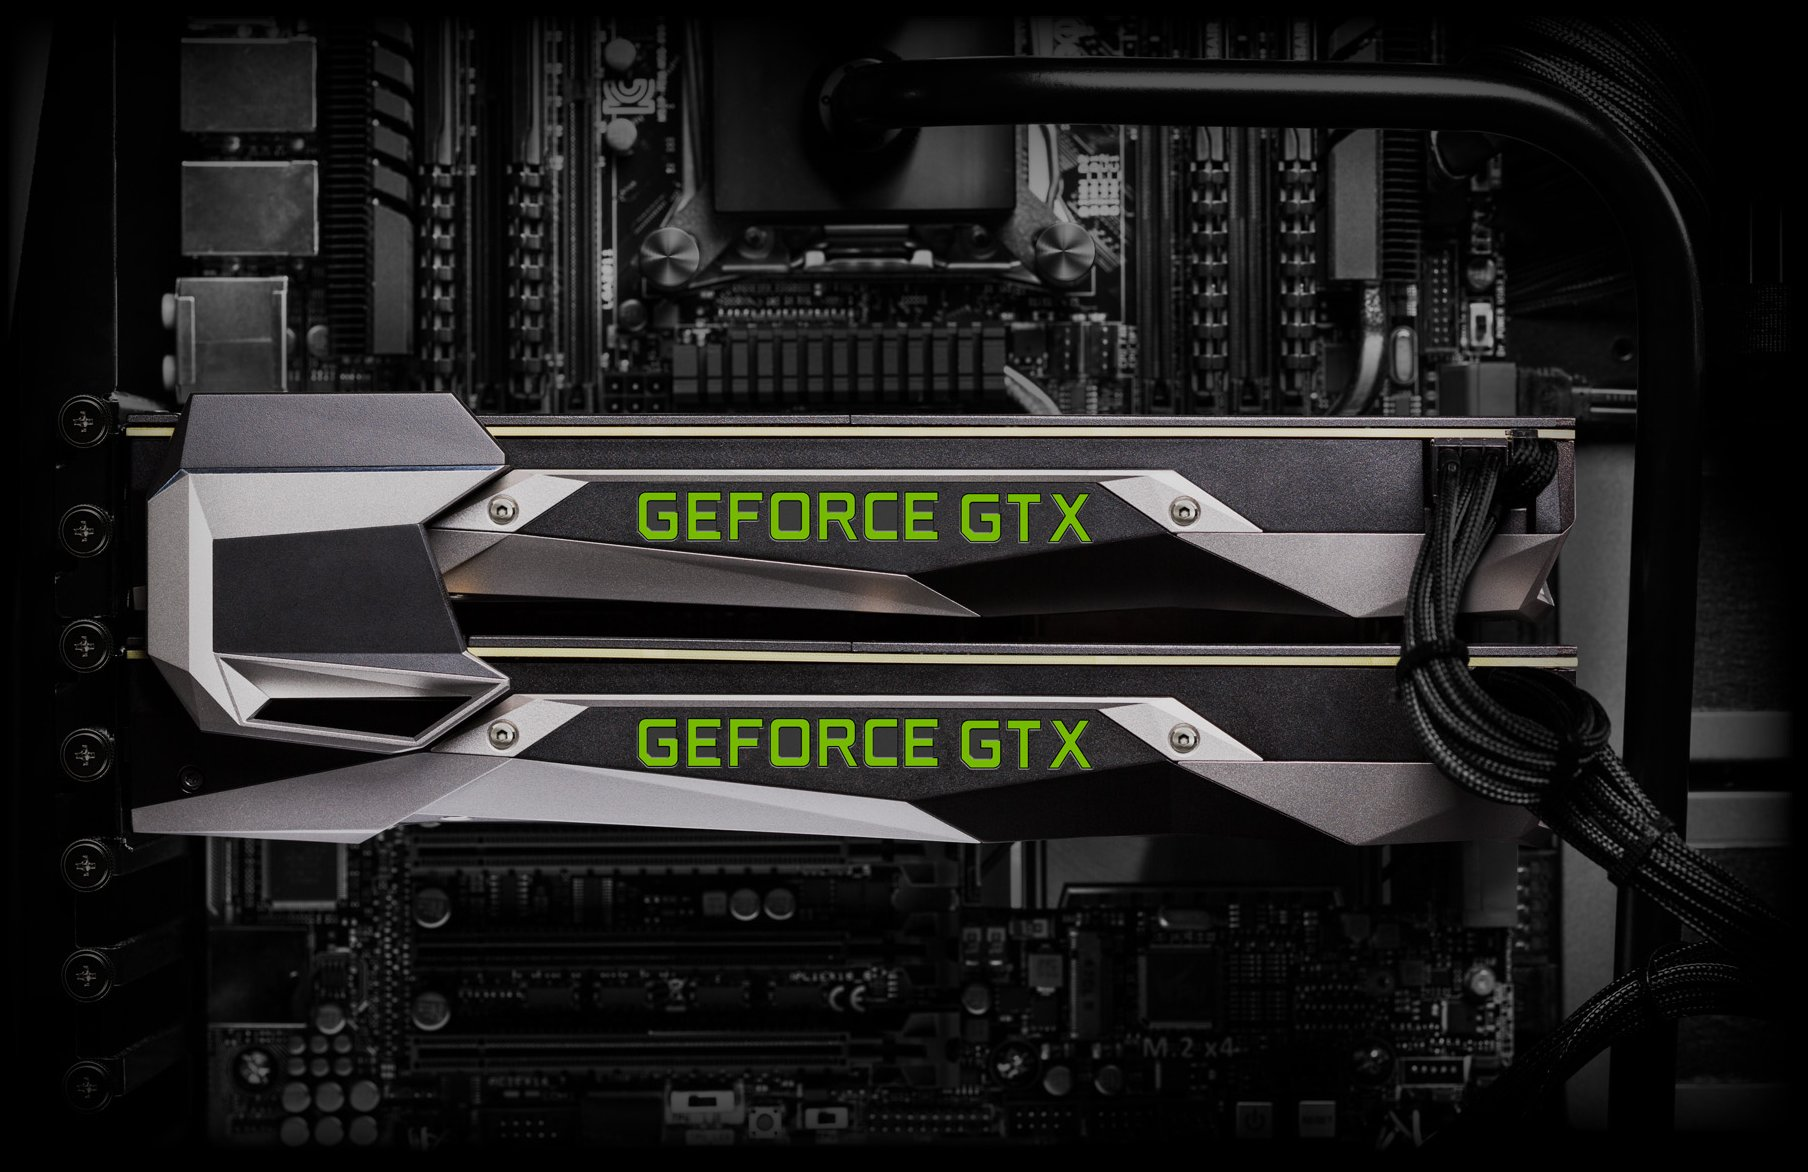 nvidia, geforce experience, bundles, graphics card, game codes